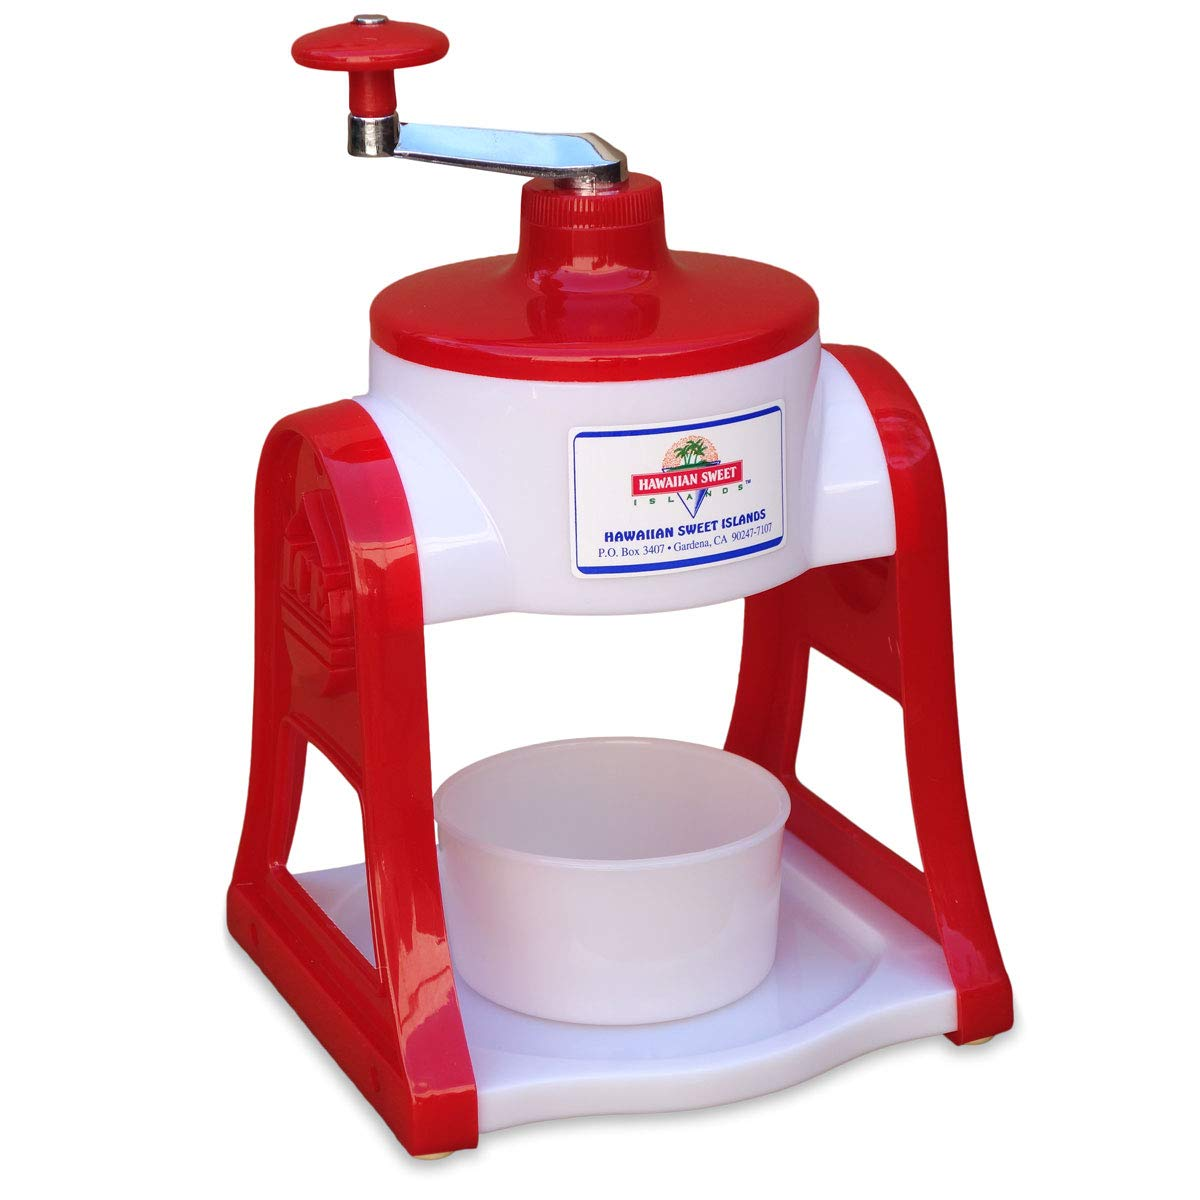 Deluxe Shave Ice Snow Cone Maker Ice Shaver Hand Crank, non-electric - RED